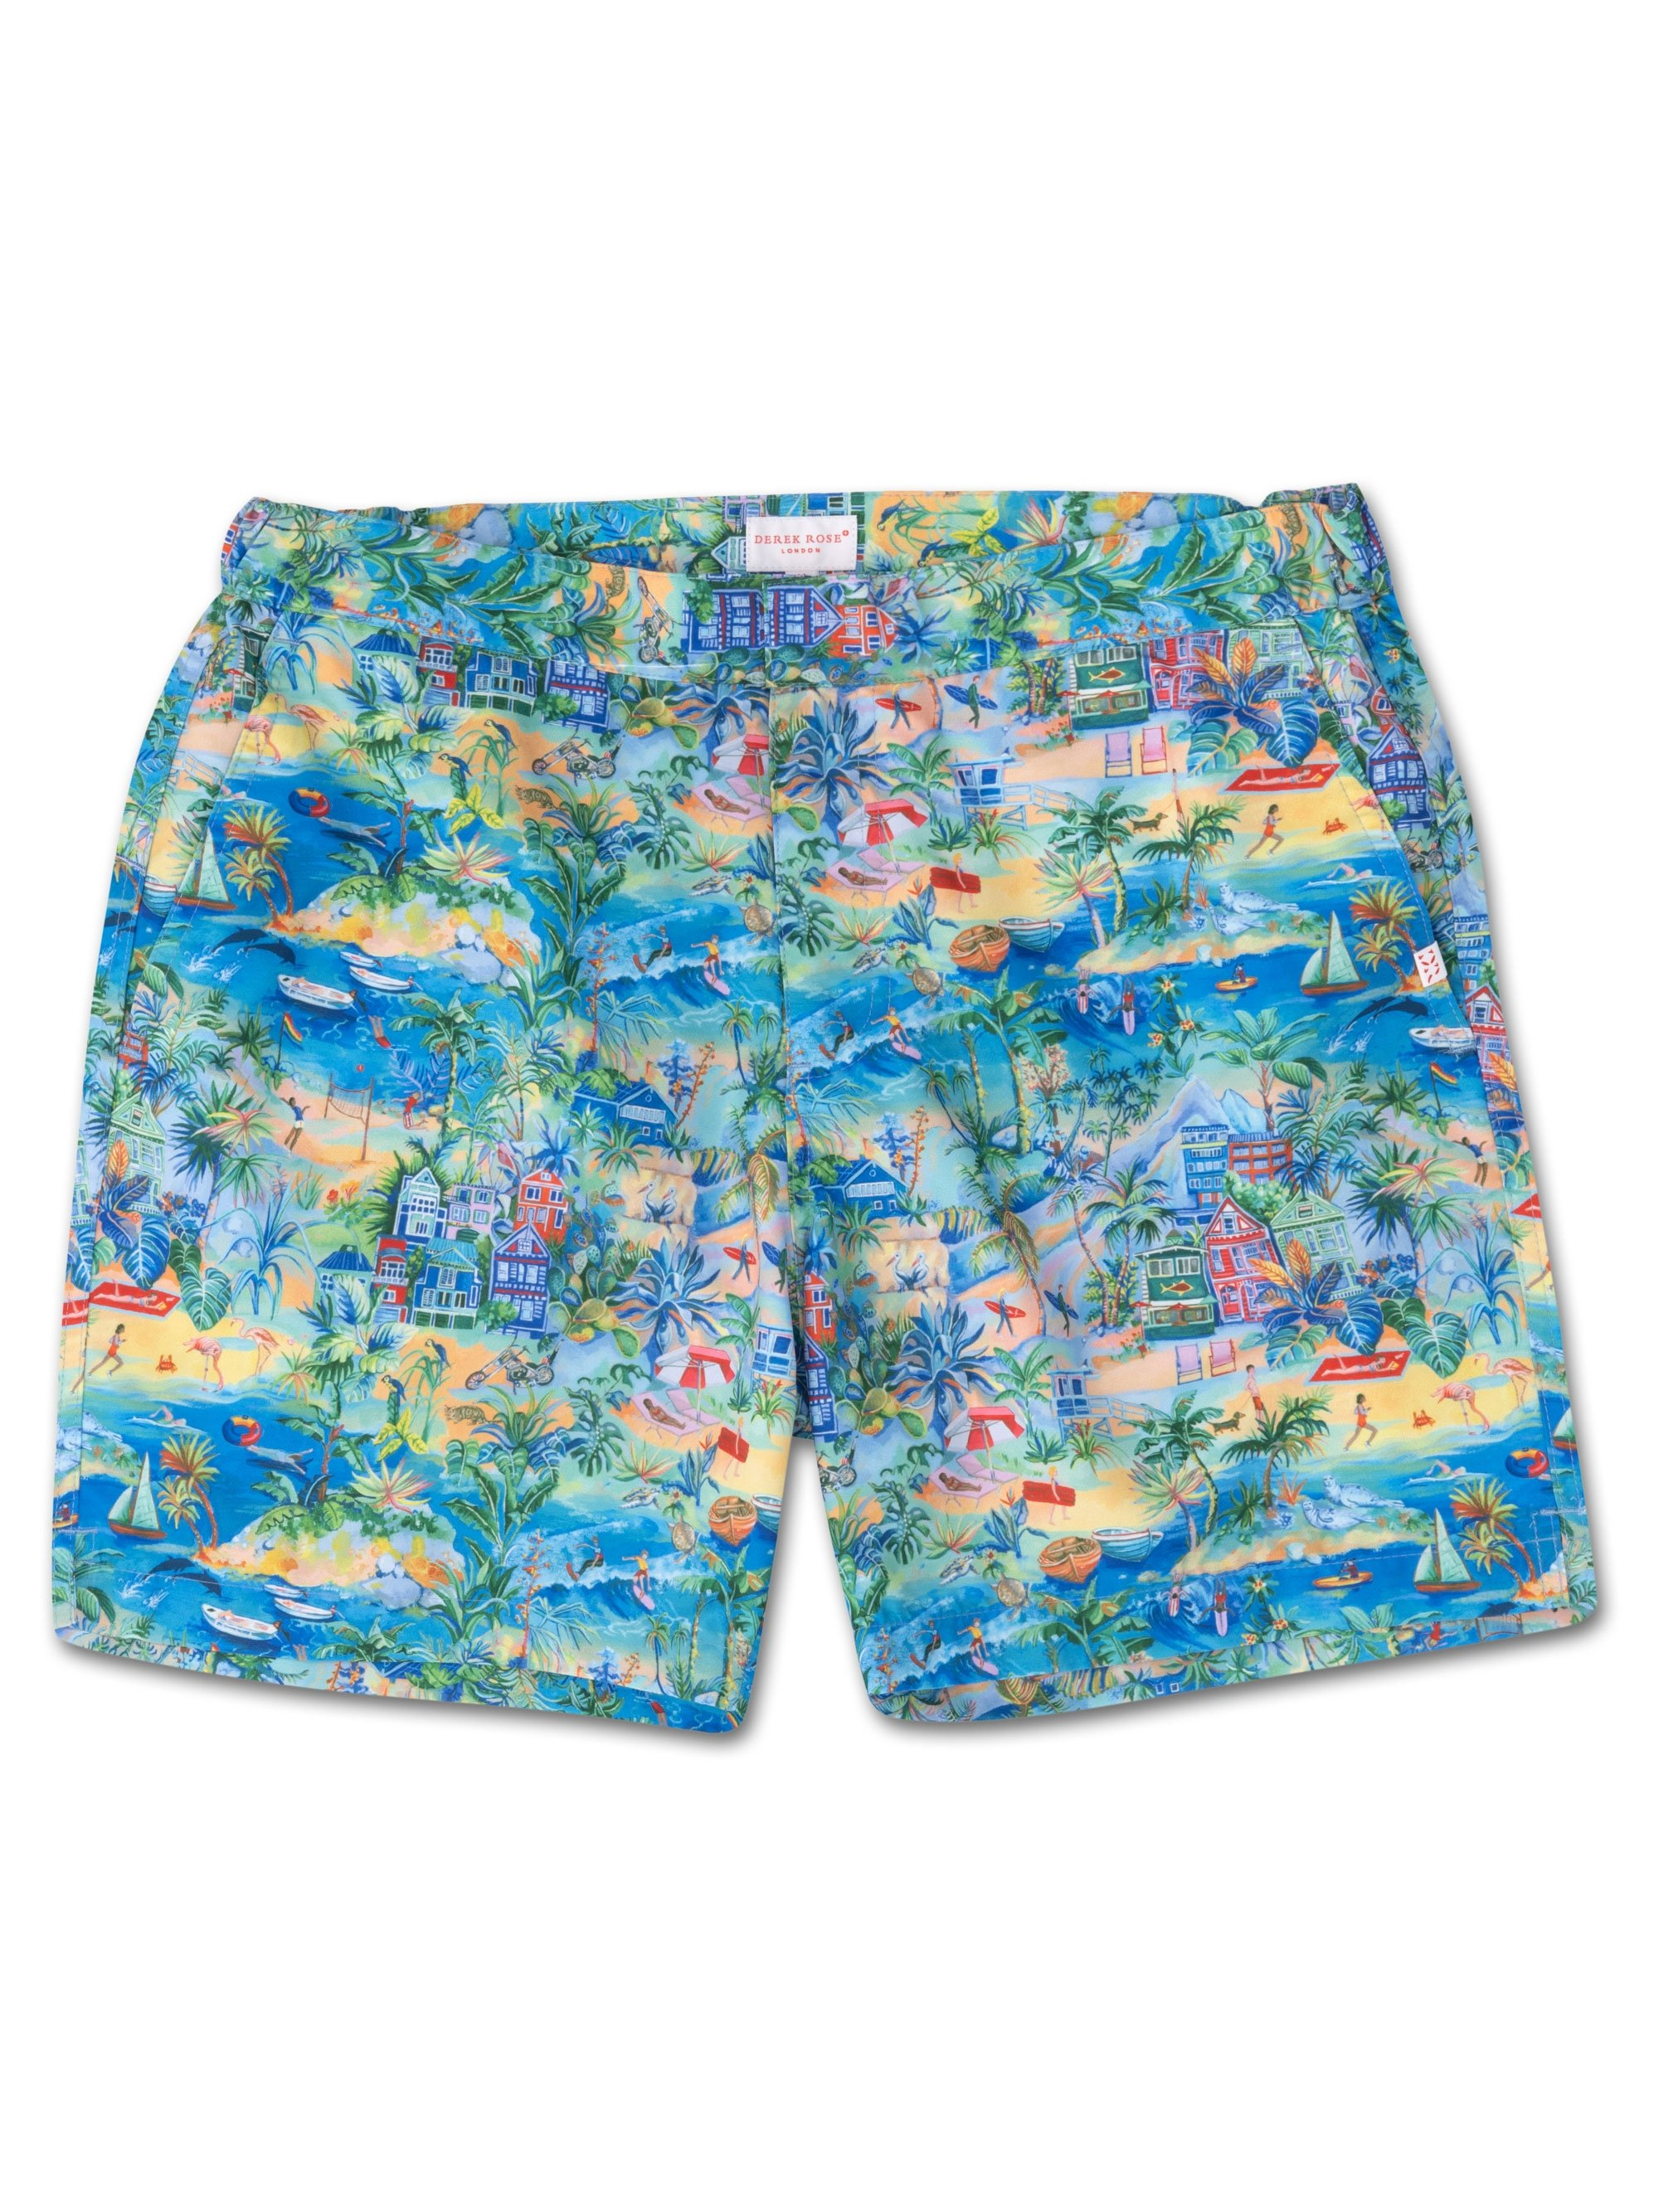 Men's Modern Fit Swim Shorts Maui 10 Multi